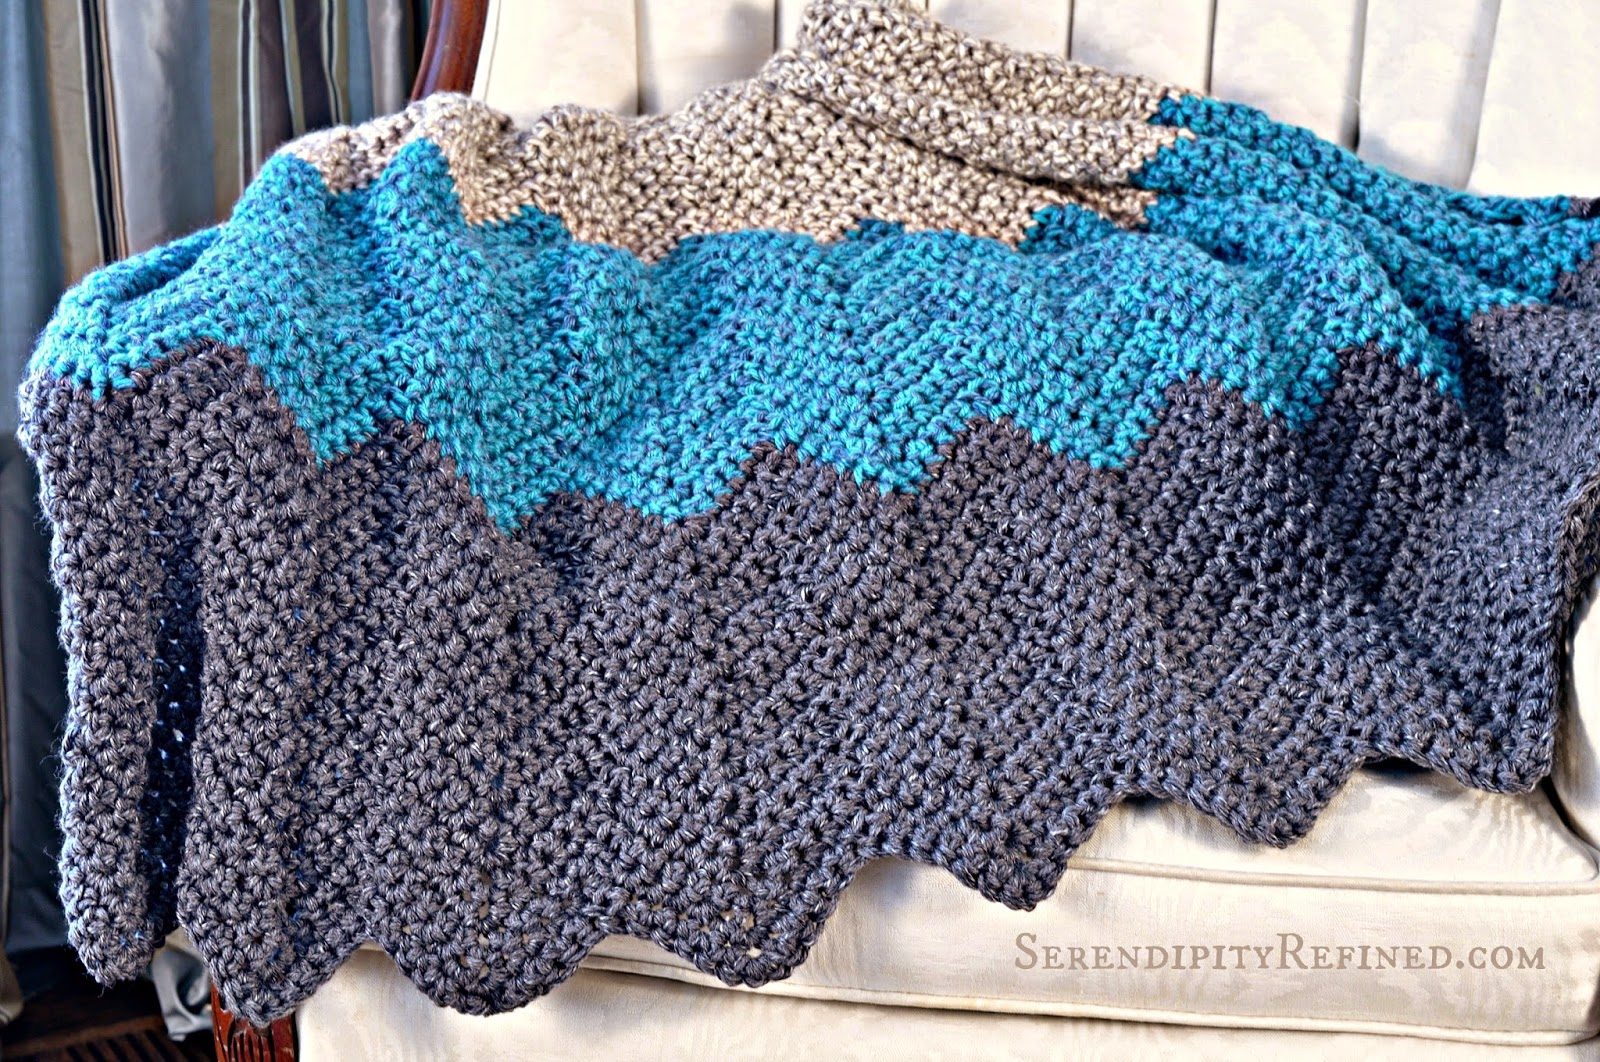 Beginner Crochet Ripple Afghan Pattern : Serendipity Refined Blog: Easy Crochet Throw Blanket Pattern